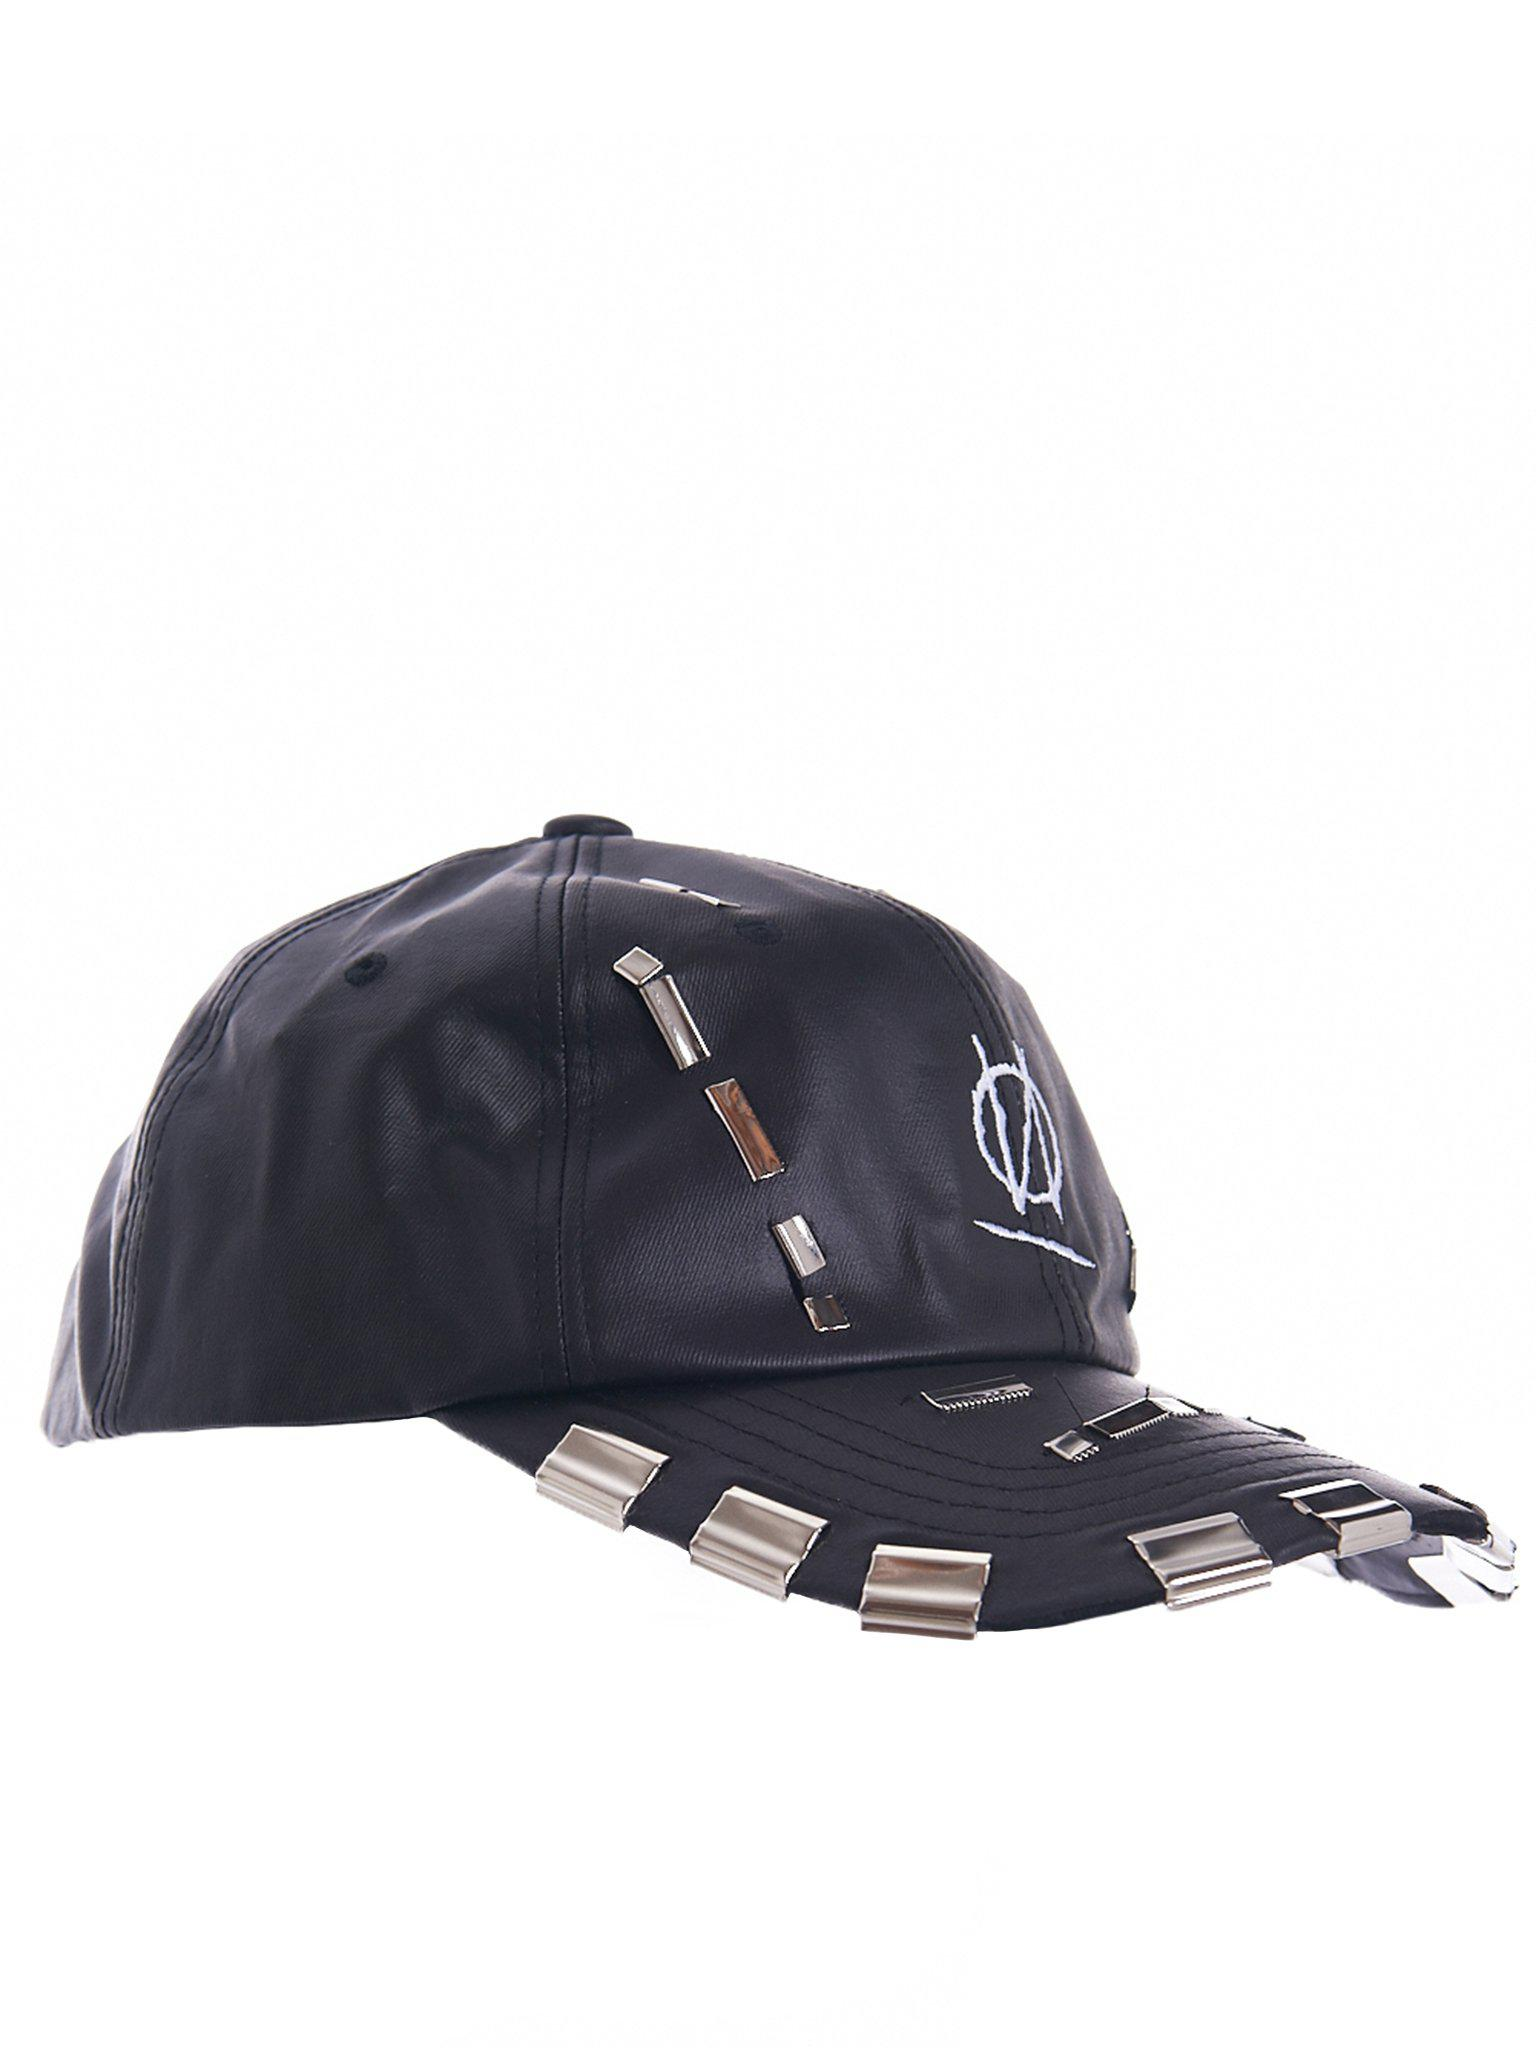 front printed logo hat - Black 99% IS mA6wnNMVX5